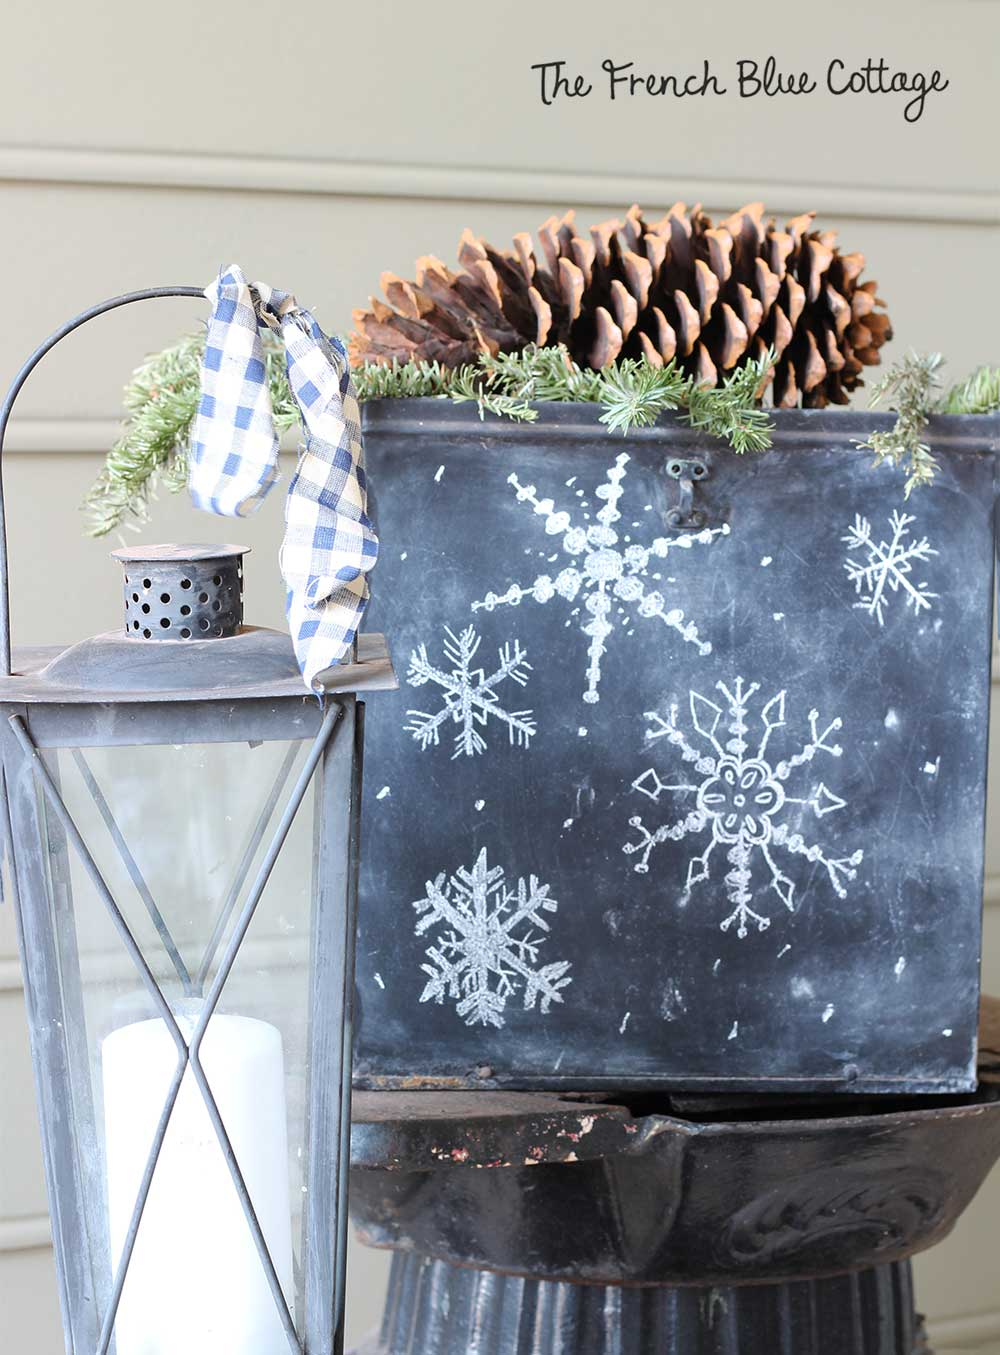 Porch chalkboard with snowflakes and gingham.